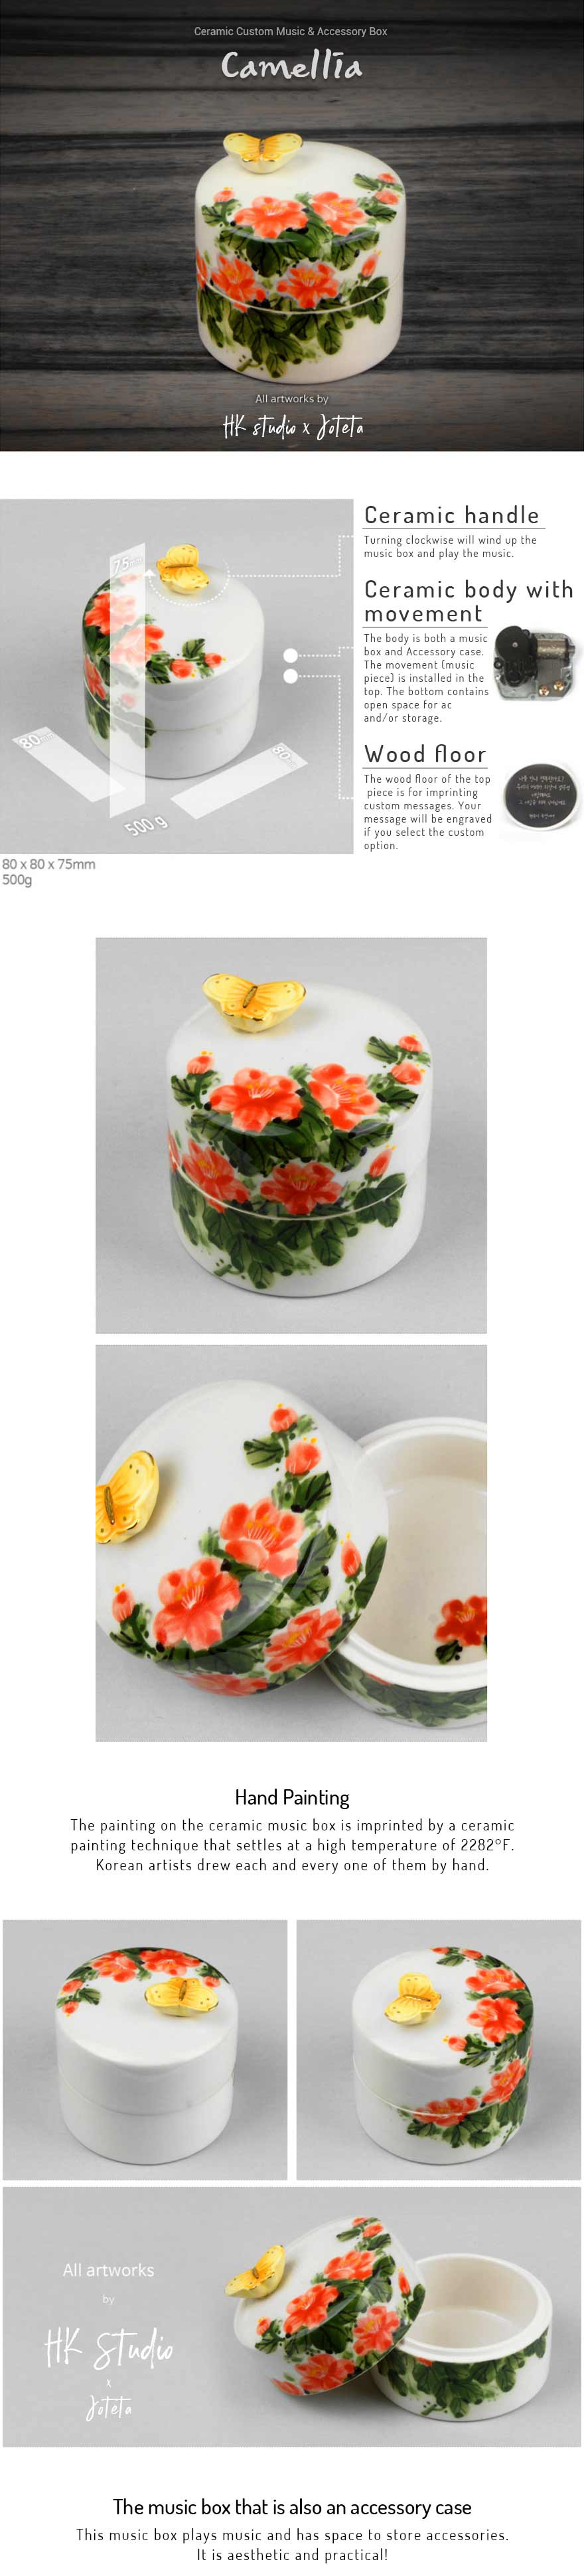 The Camellia Ceramic Custom Music Jewelry Box is authentic and Korean and offers you the ability to engrave and choose a song to personalize the box for your loved one.